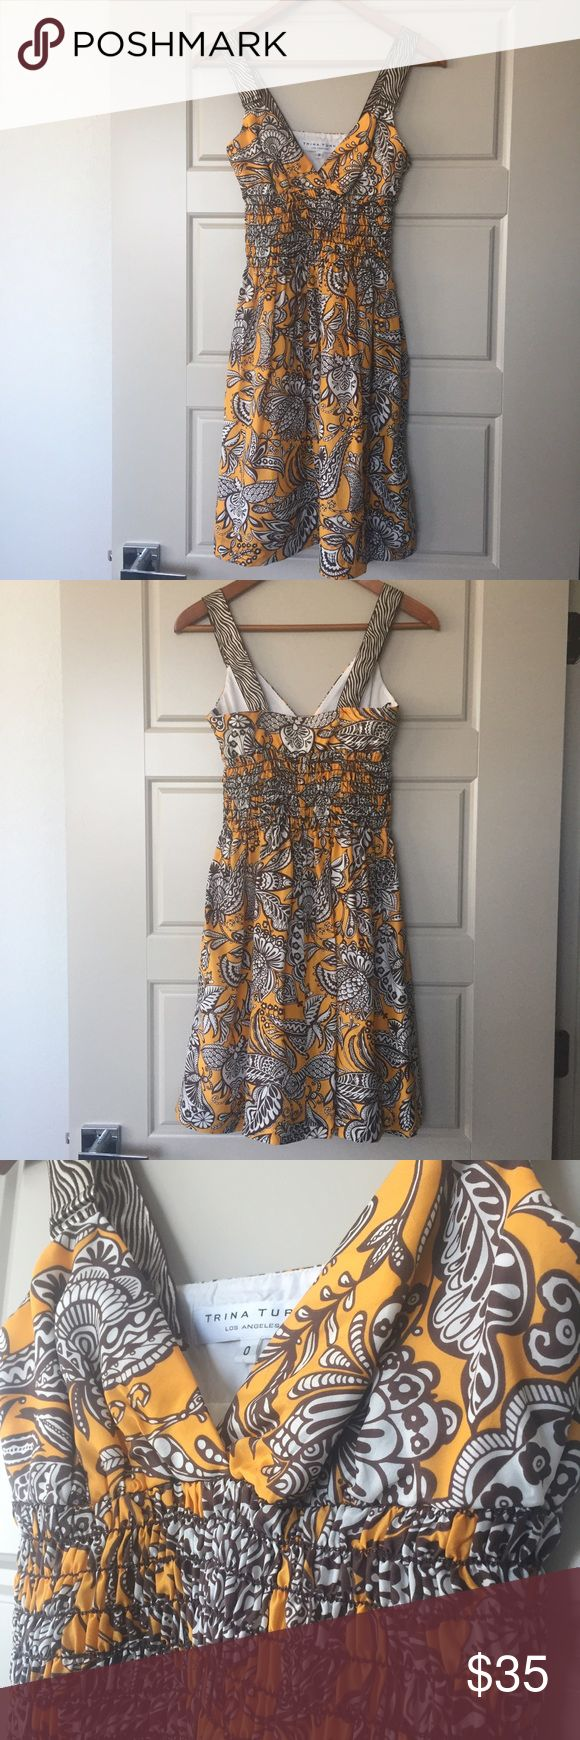 TRINA TURK Dress, Size 0 TRINA TURK Dress, Size 0. Fun bright yellow pattern with front V-neck design; side zipper closure. Excellent condition. Trina Turk Dresses